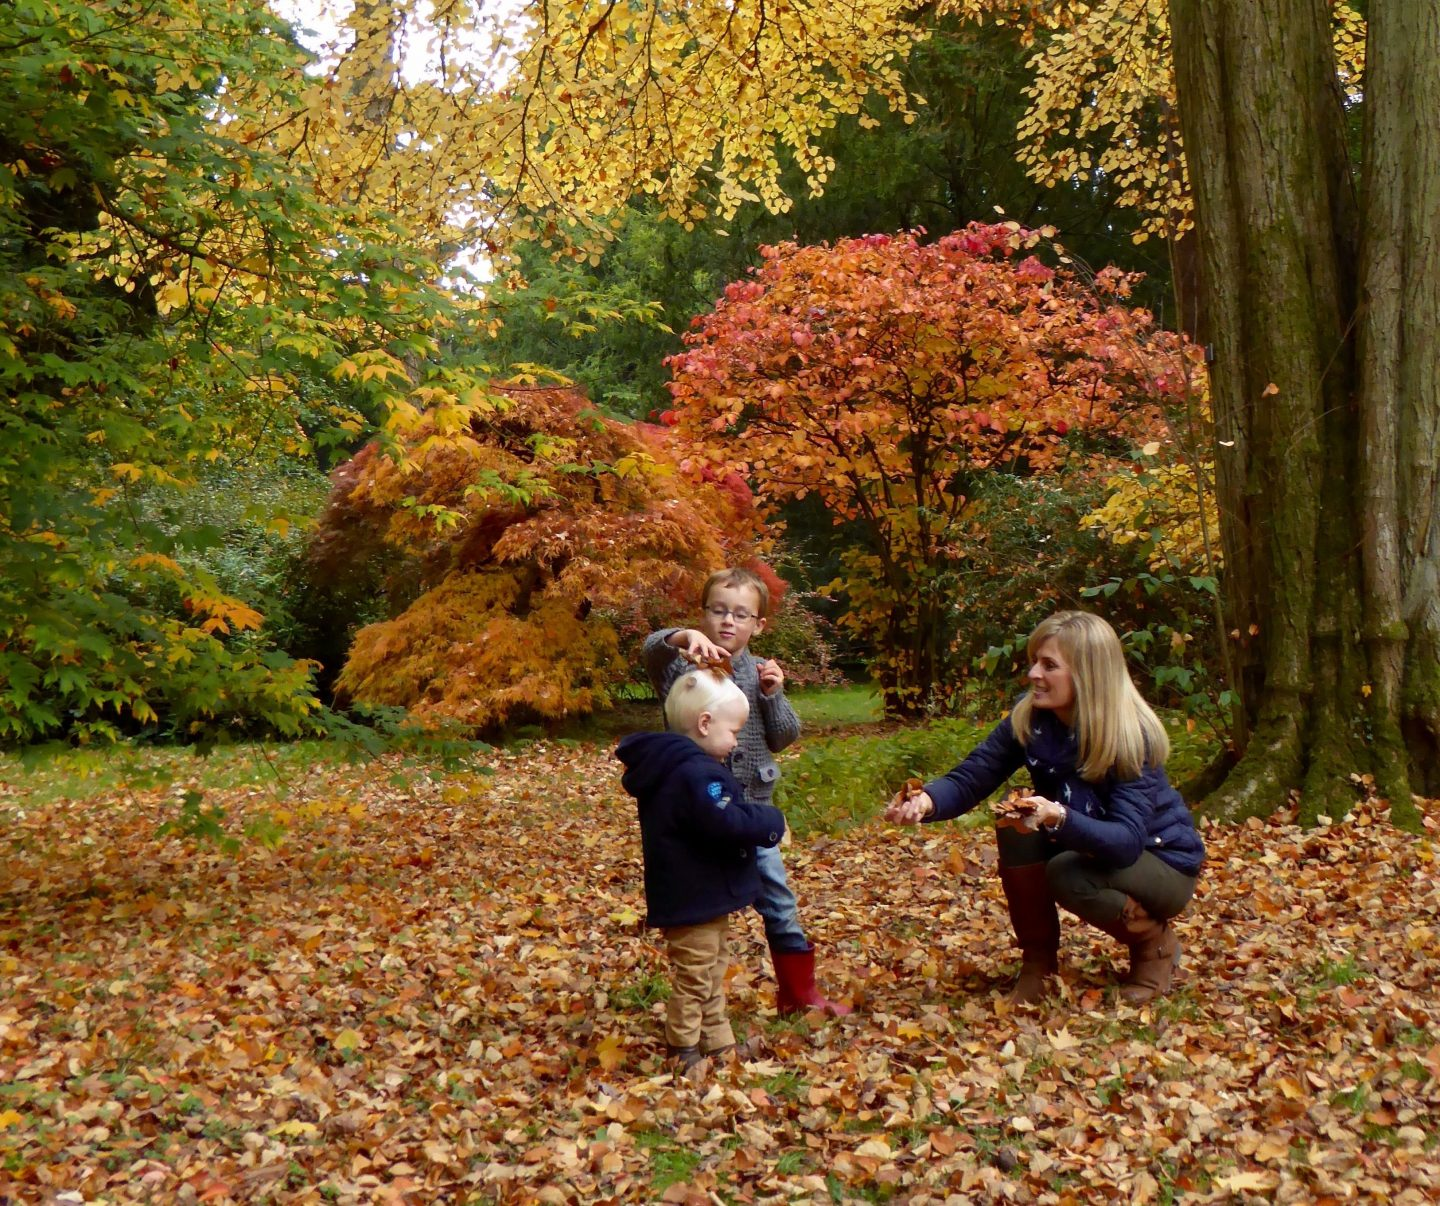 Autumn walk - Autumn outdoor family adventures